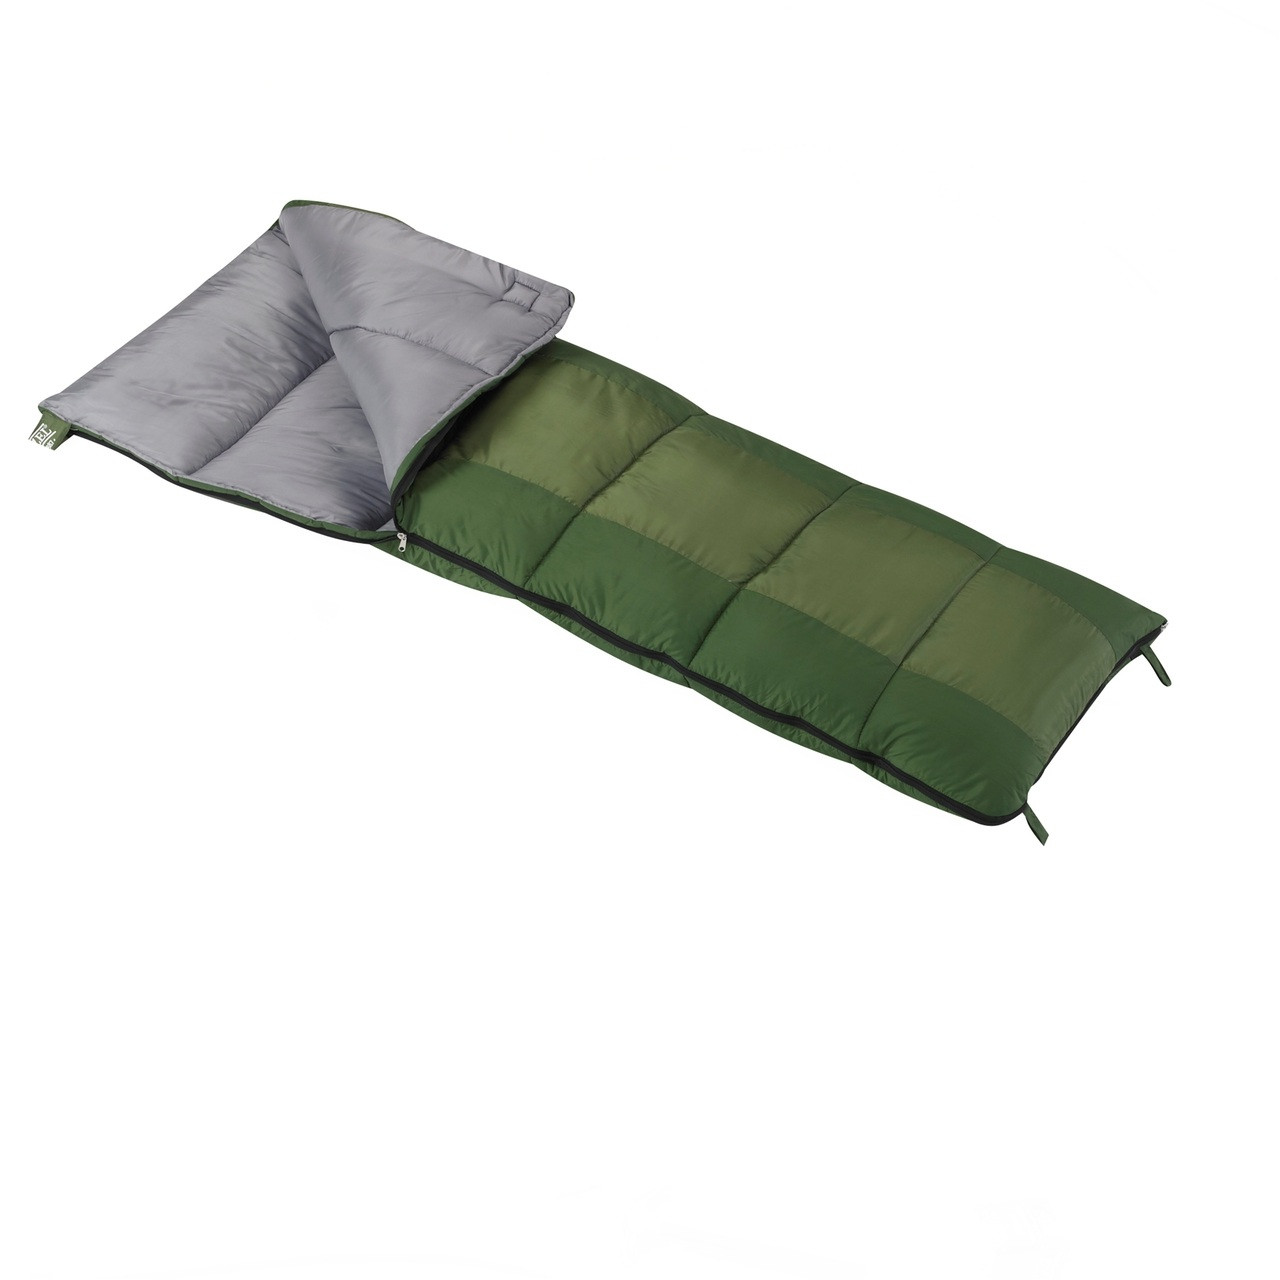 Wenzel Kids Summer Camp 40 degree sleeping bag, green, laying flat with the zipper partially unzipped and the corner folded over showing the gray interior of the sleeping bag